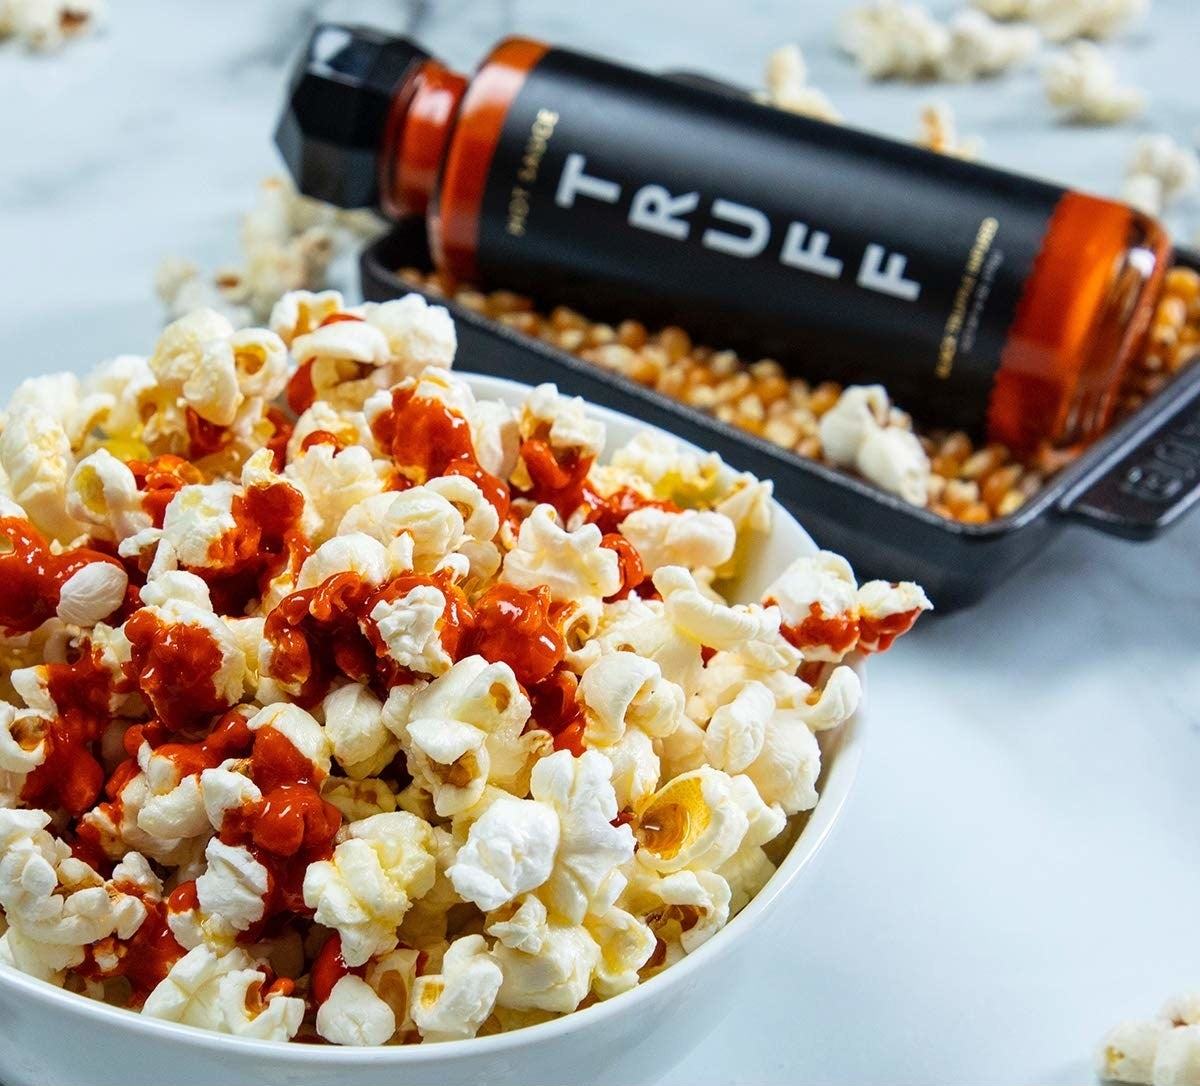 The sauce drizzled on popcorn